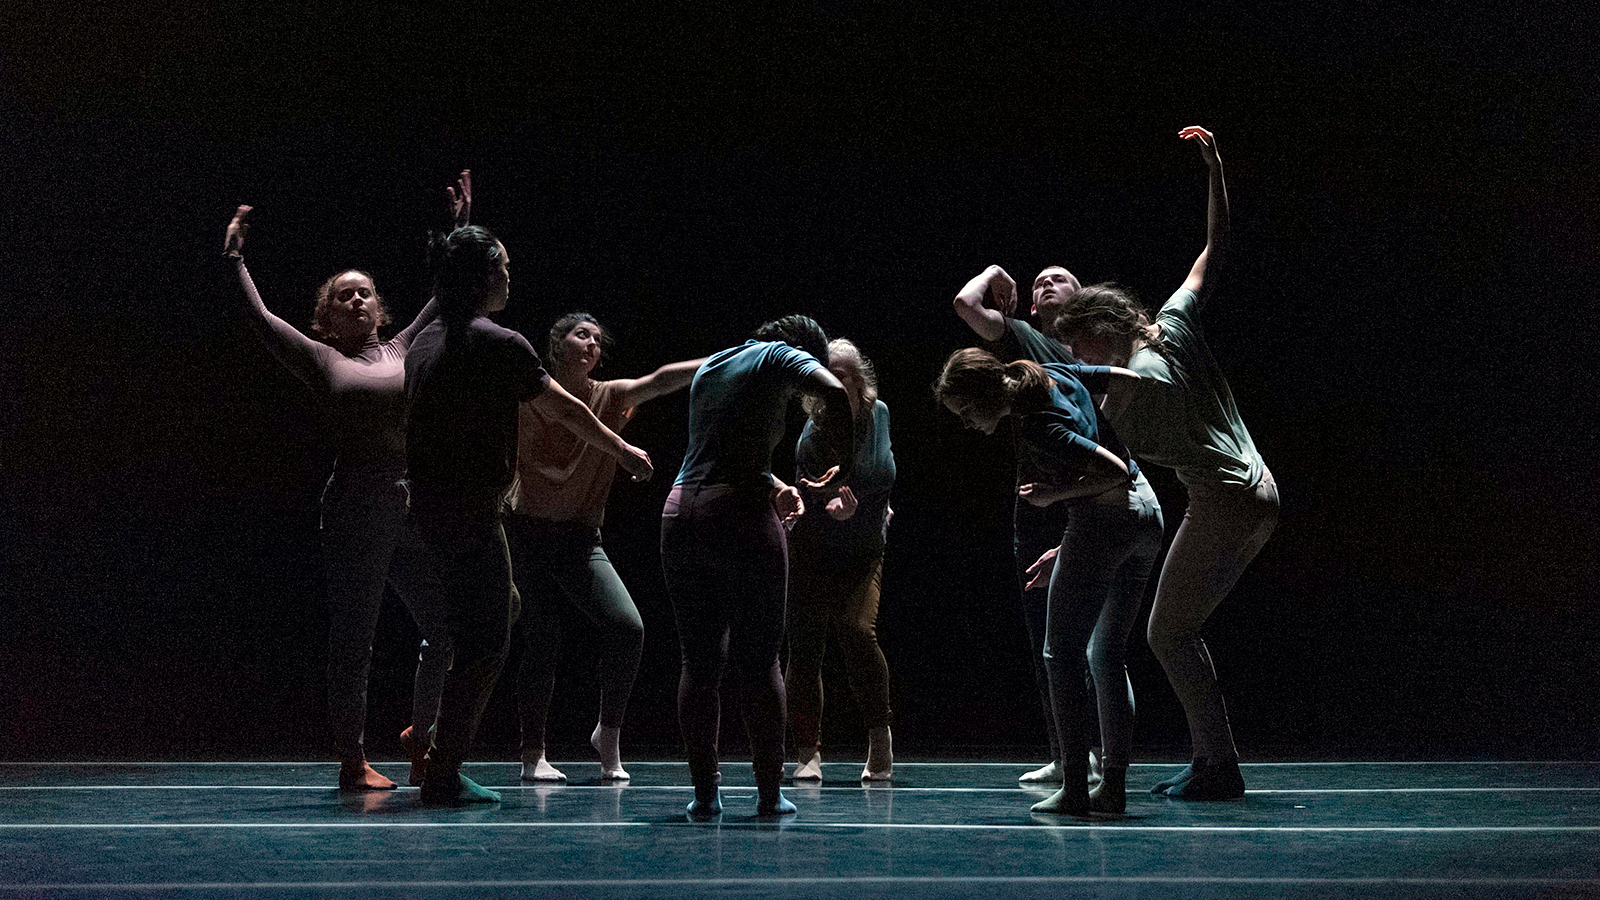 Dancers on stage at the University of Iowa